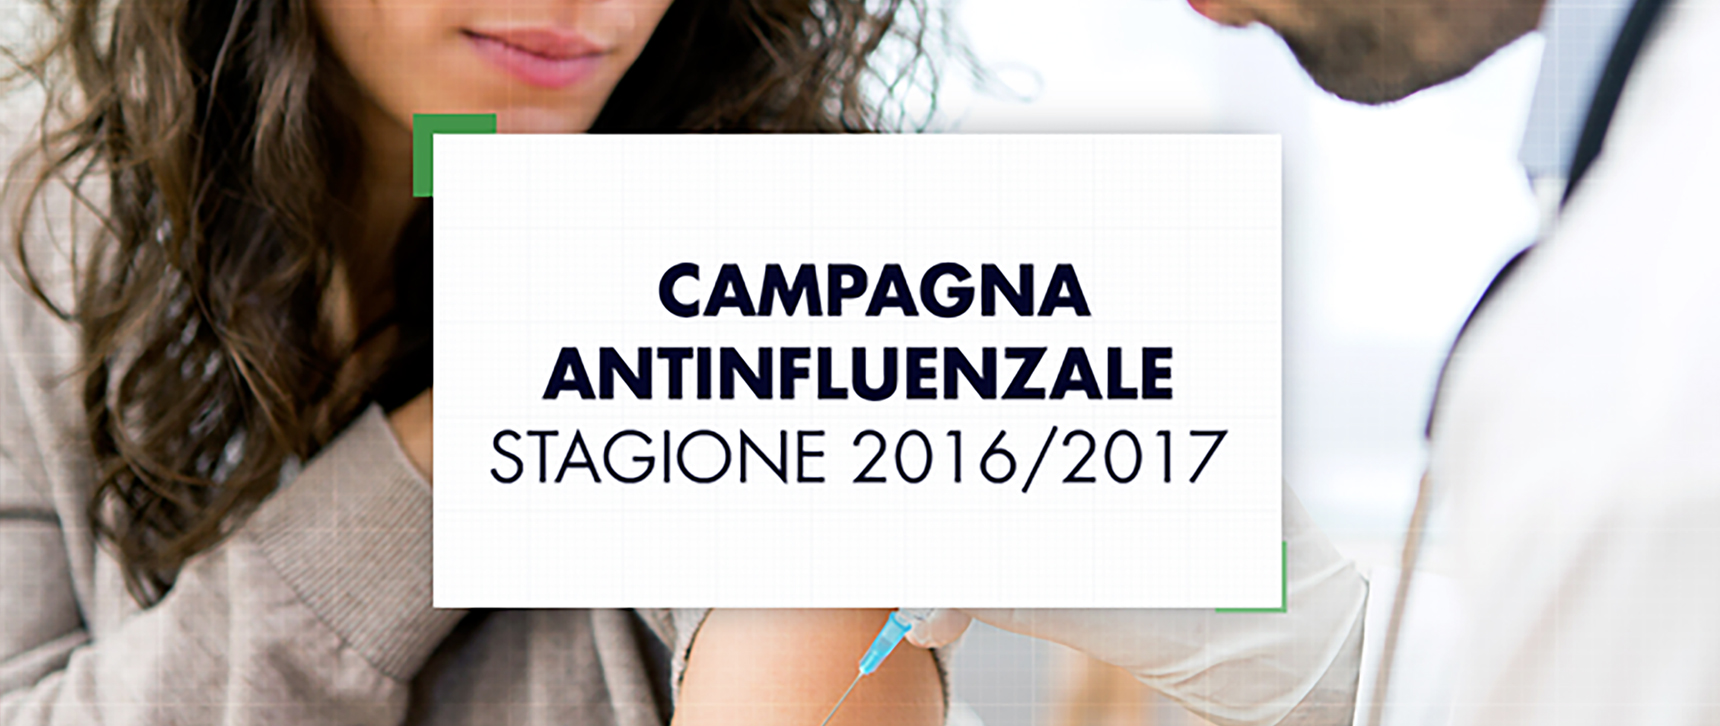 CAMPAGNA ANTINFLUENZALE STAGIONE 2016/2017